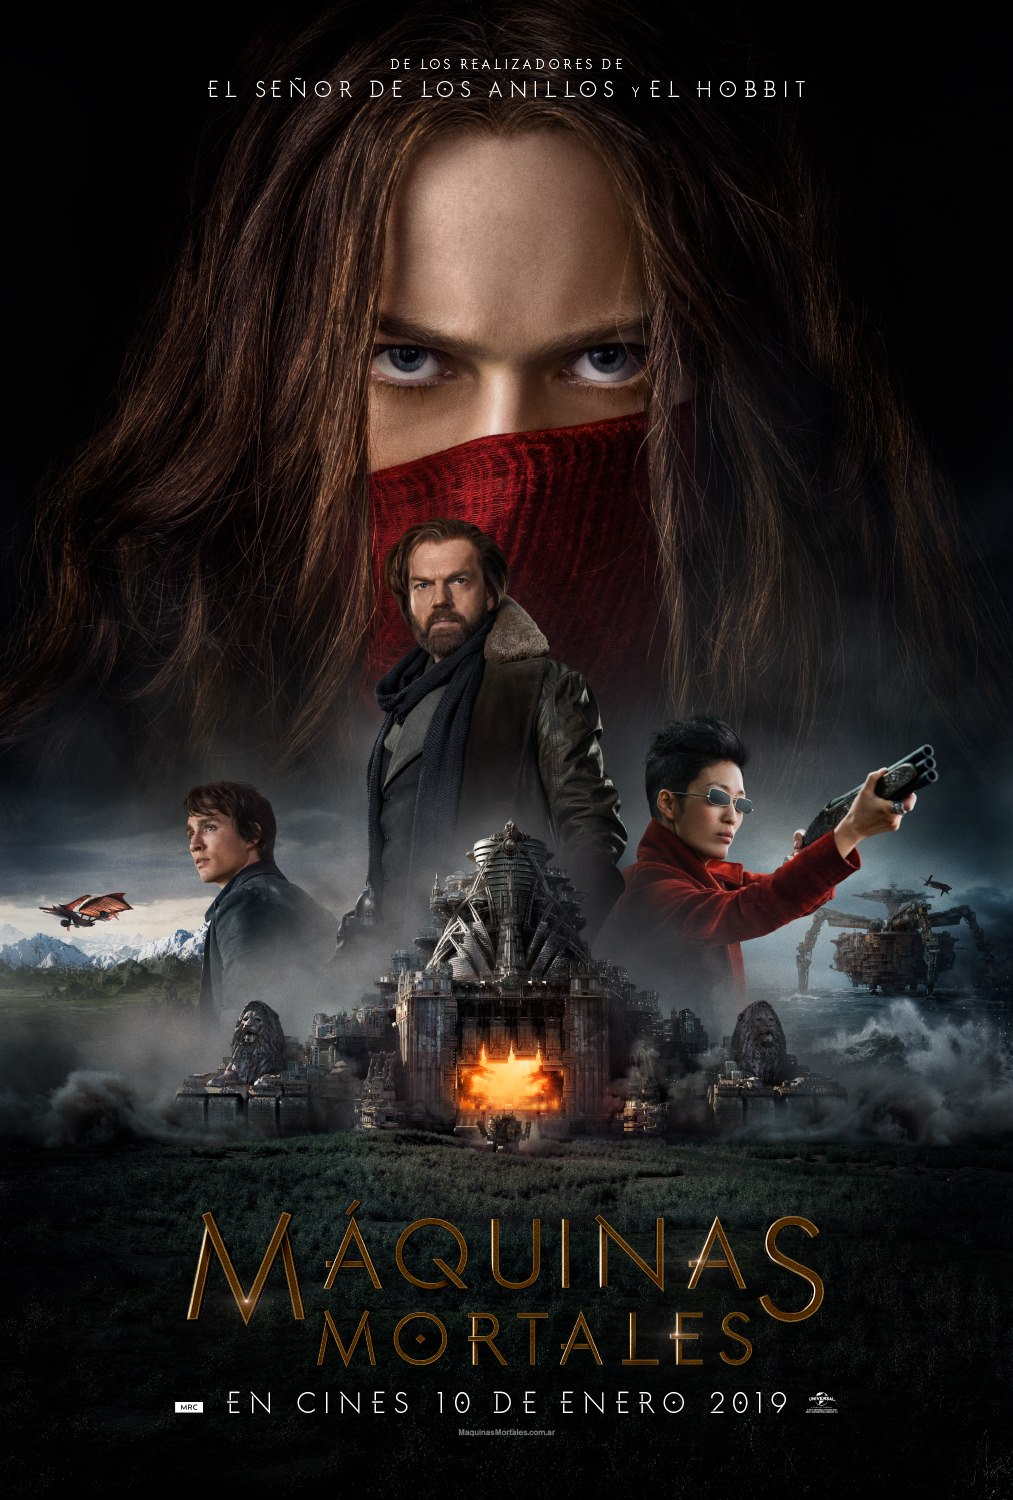 Maquinas Mortales (Mortal Engines) (2018)